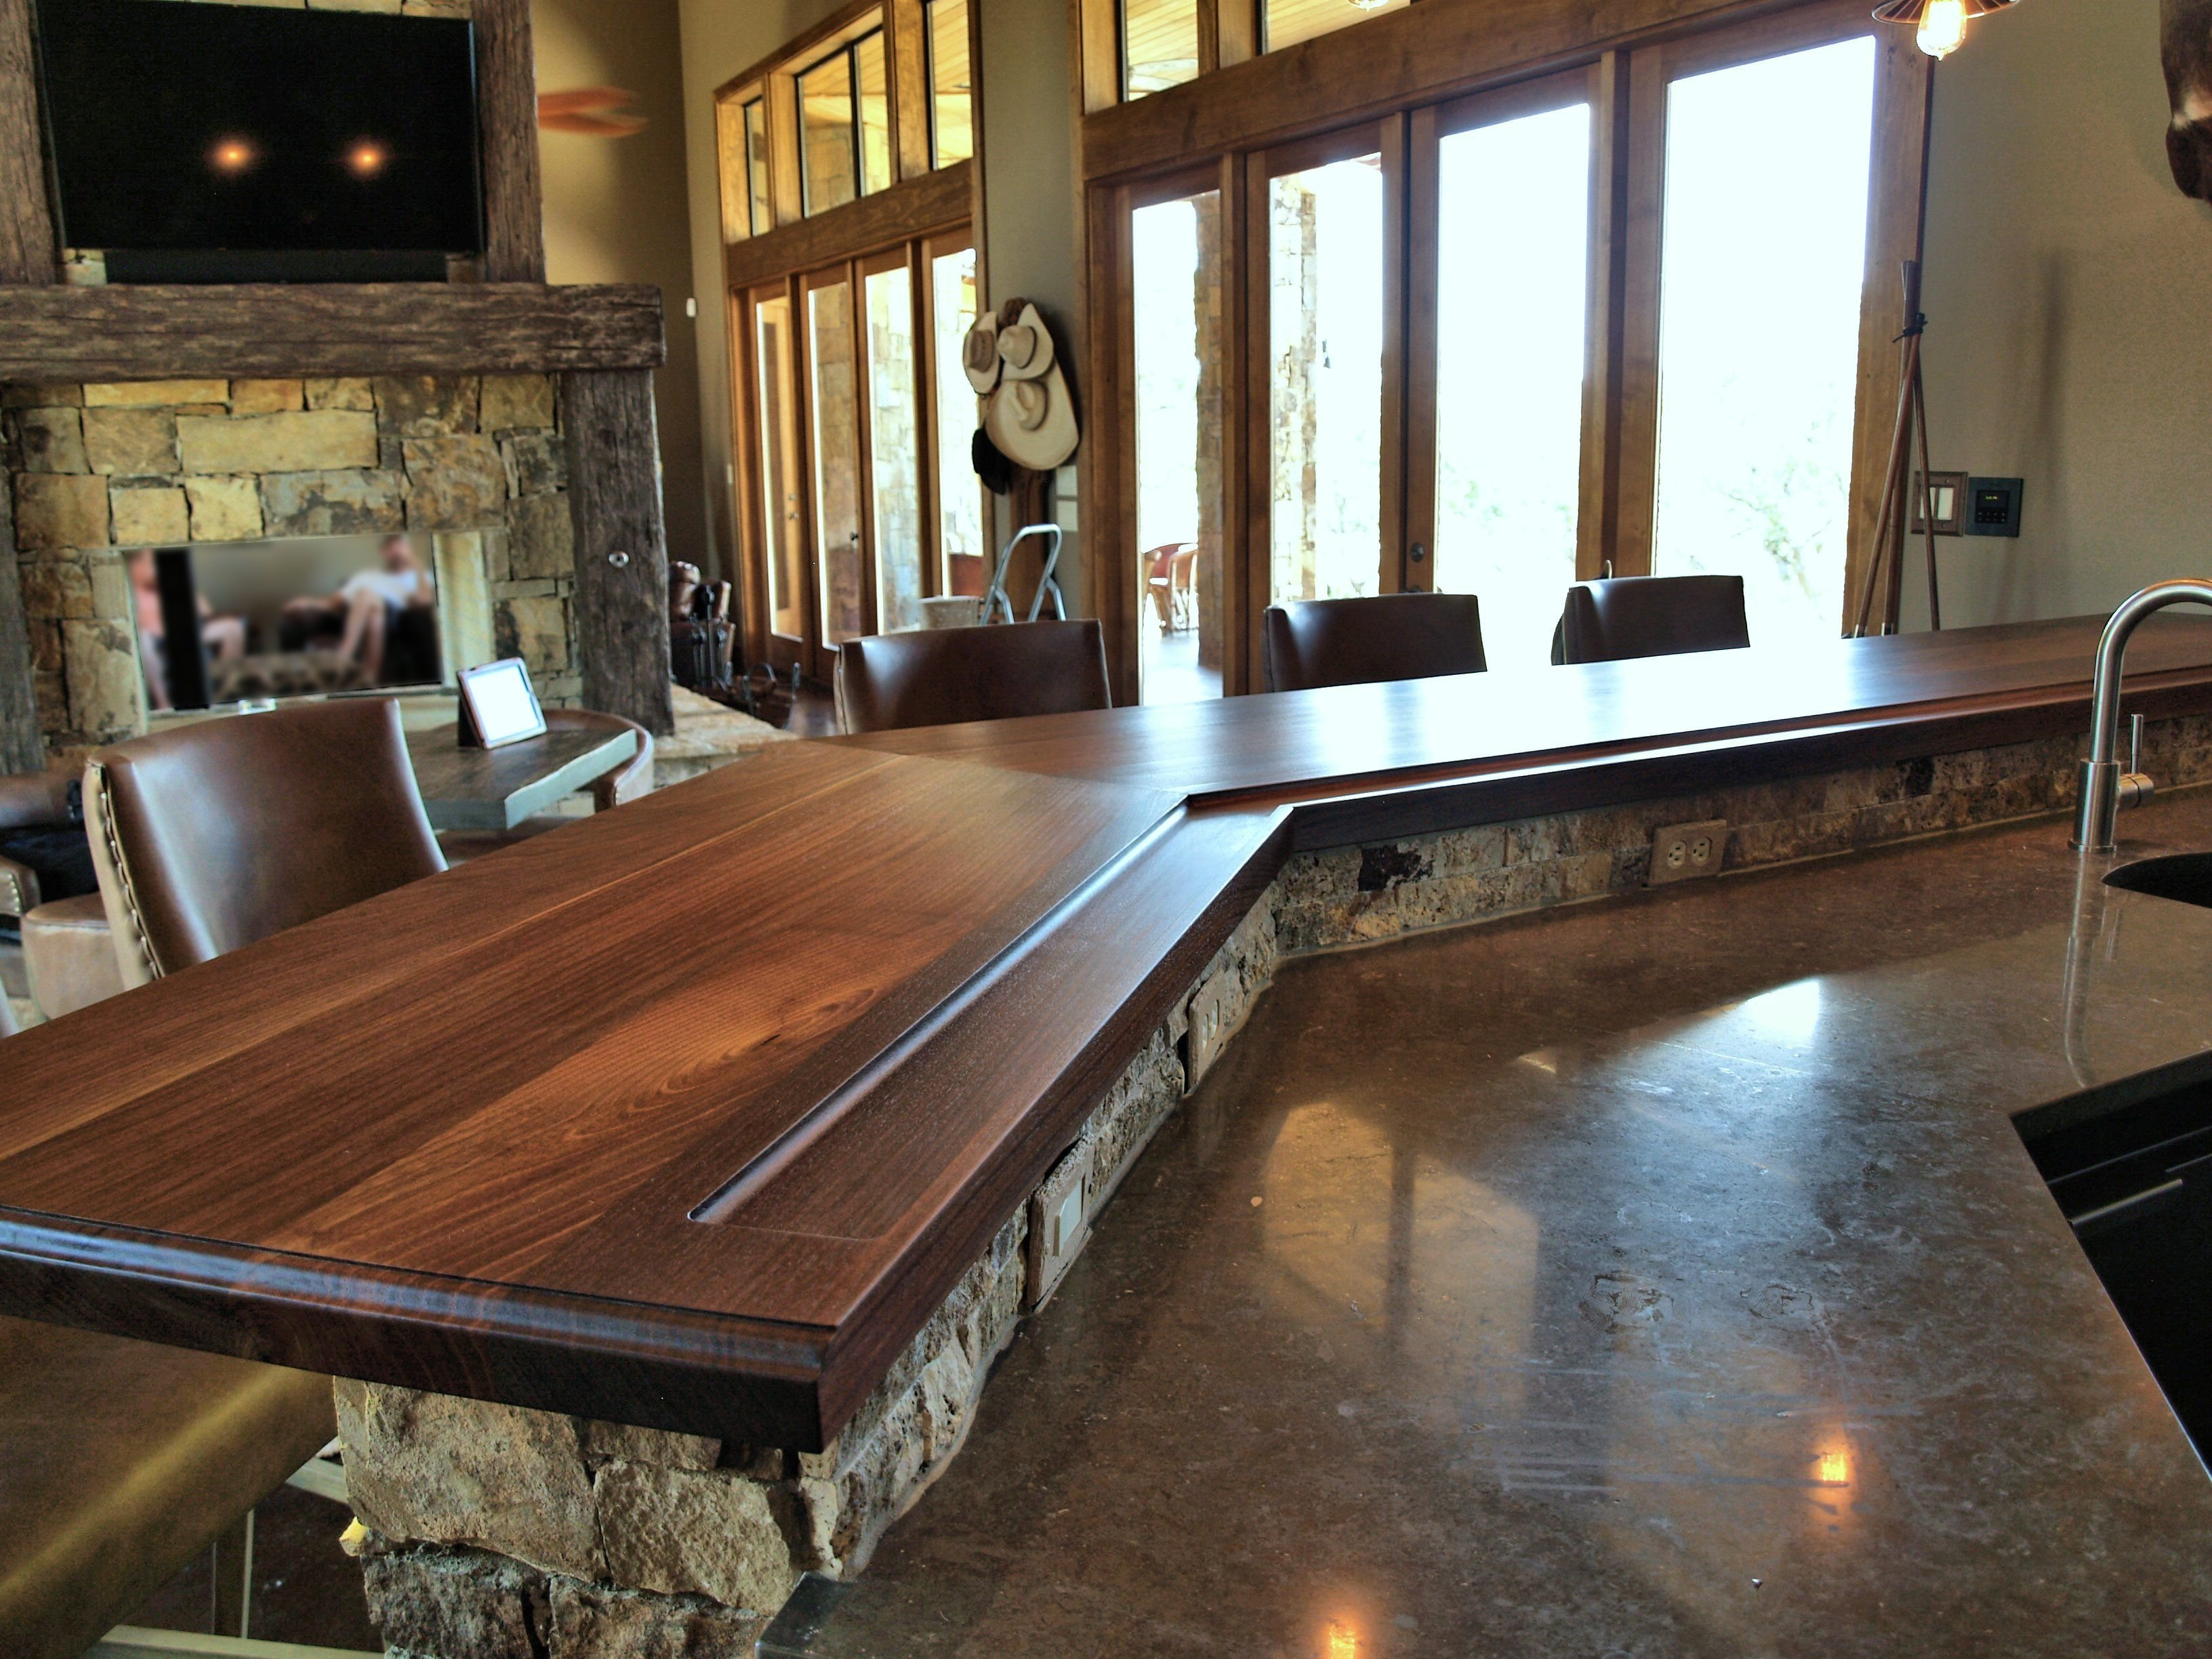 Countertops For Bars Slab Walnut Wood Countertop Photo Gallery By Devos Custom Woodworking